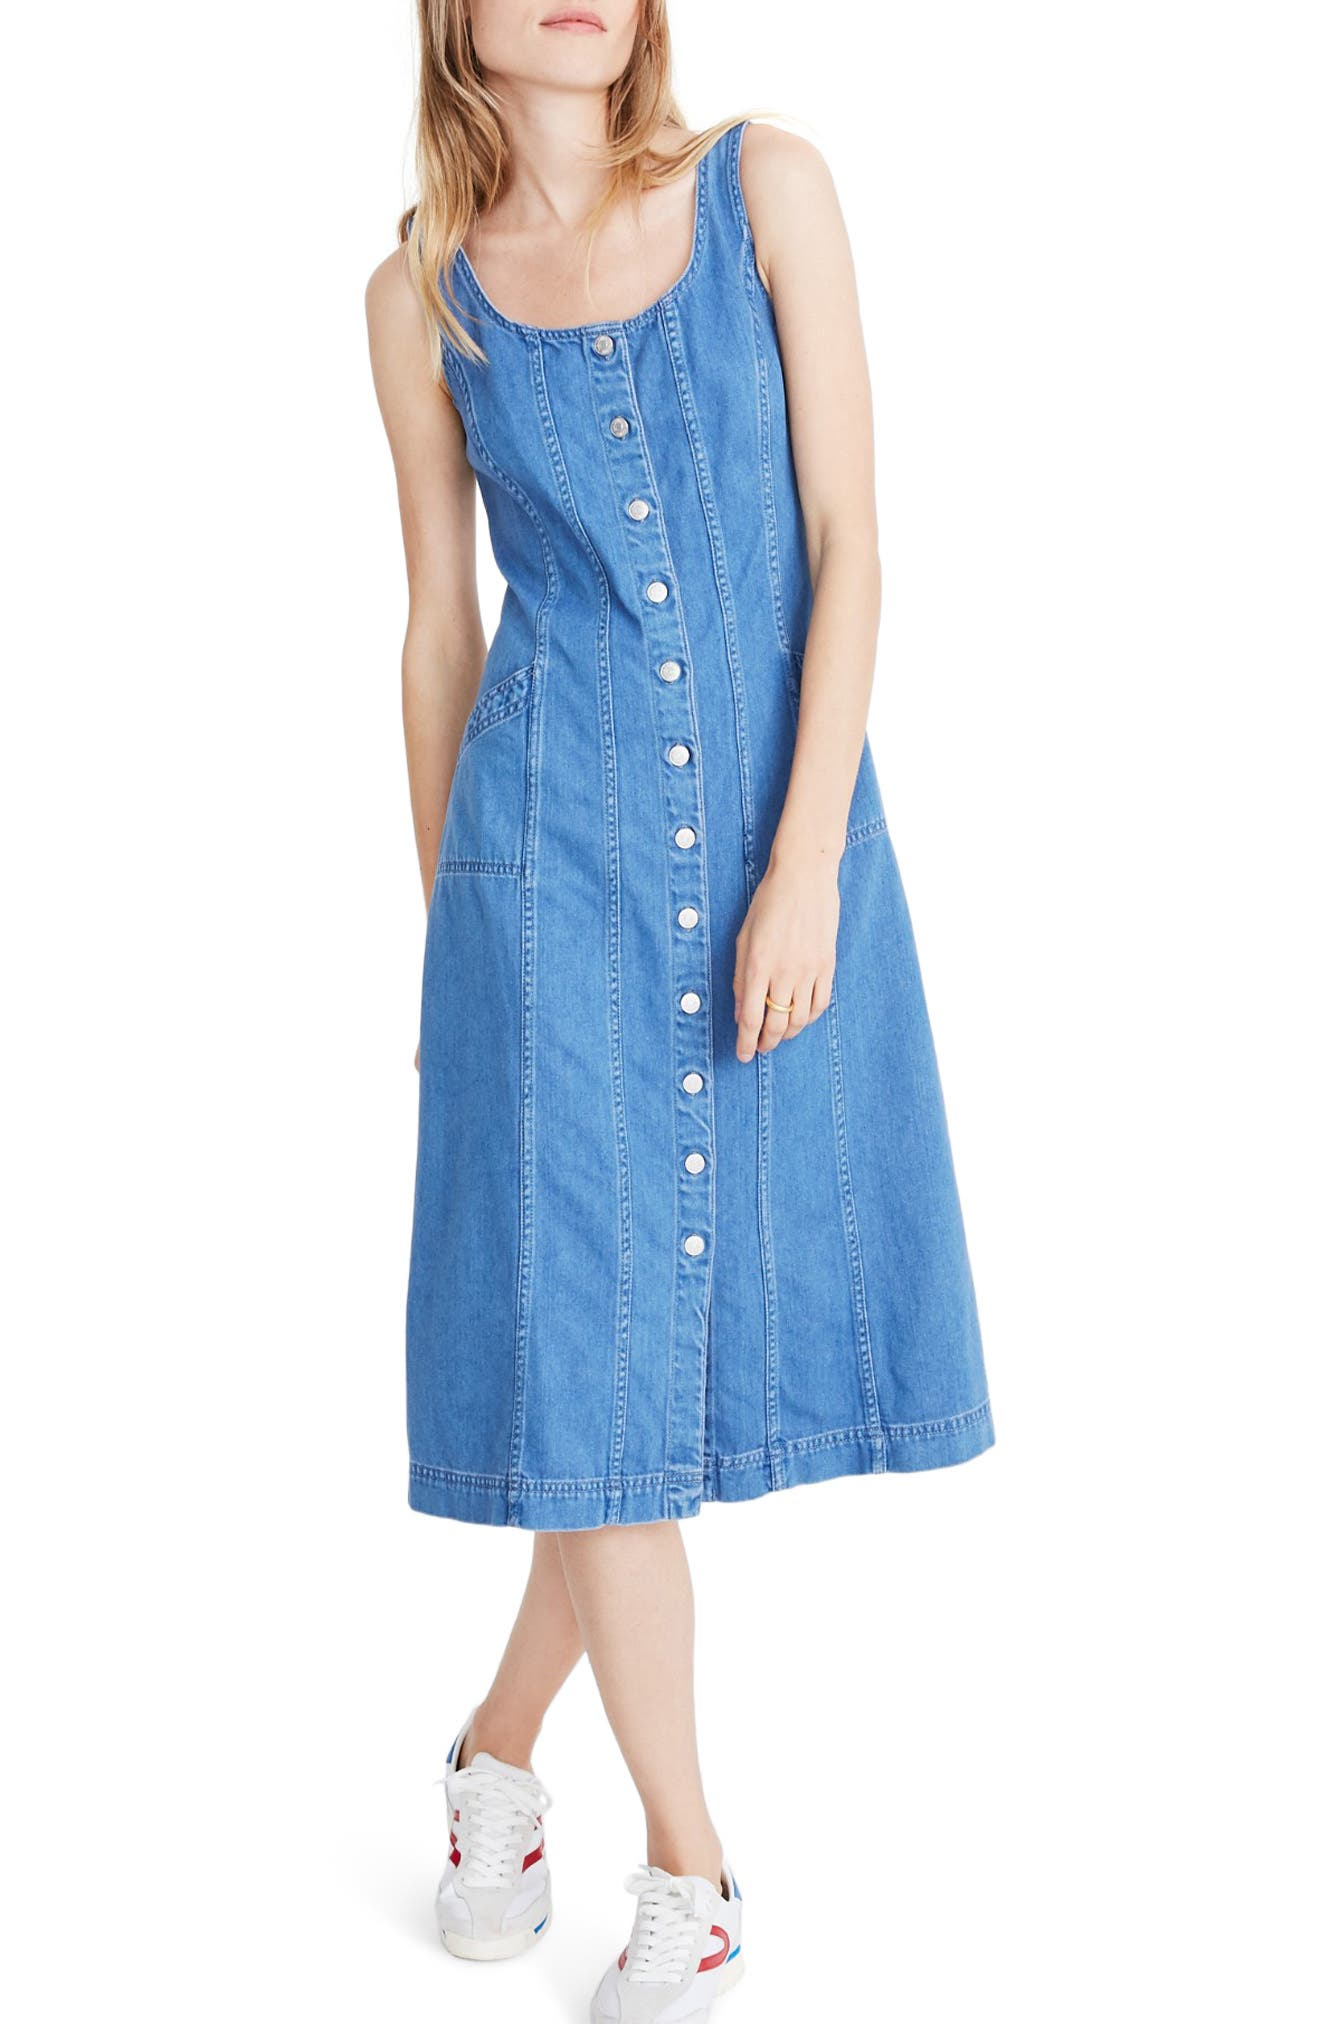 Just like the one your mom wore in the \'90s, but better because it\'s made of supersoft lightweight denim. This sleeveless button-front dress has flattering princess seams and a body-skimming shape, plus side pockets. Style Name: Madewell Button Front Denim Dress. Style Number: 6044856. Available in stores.